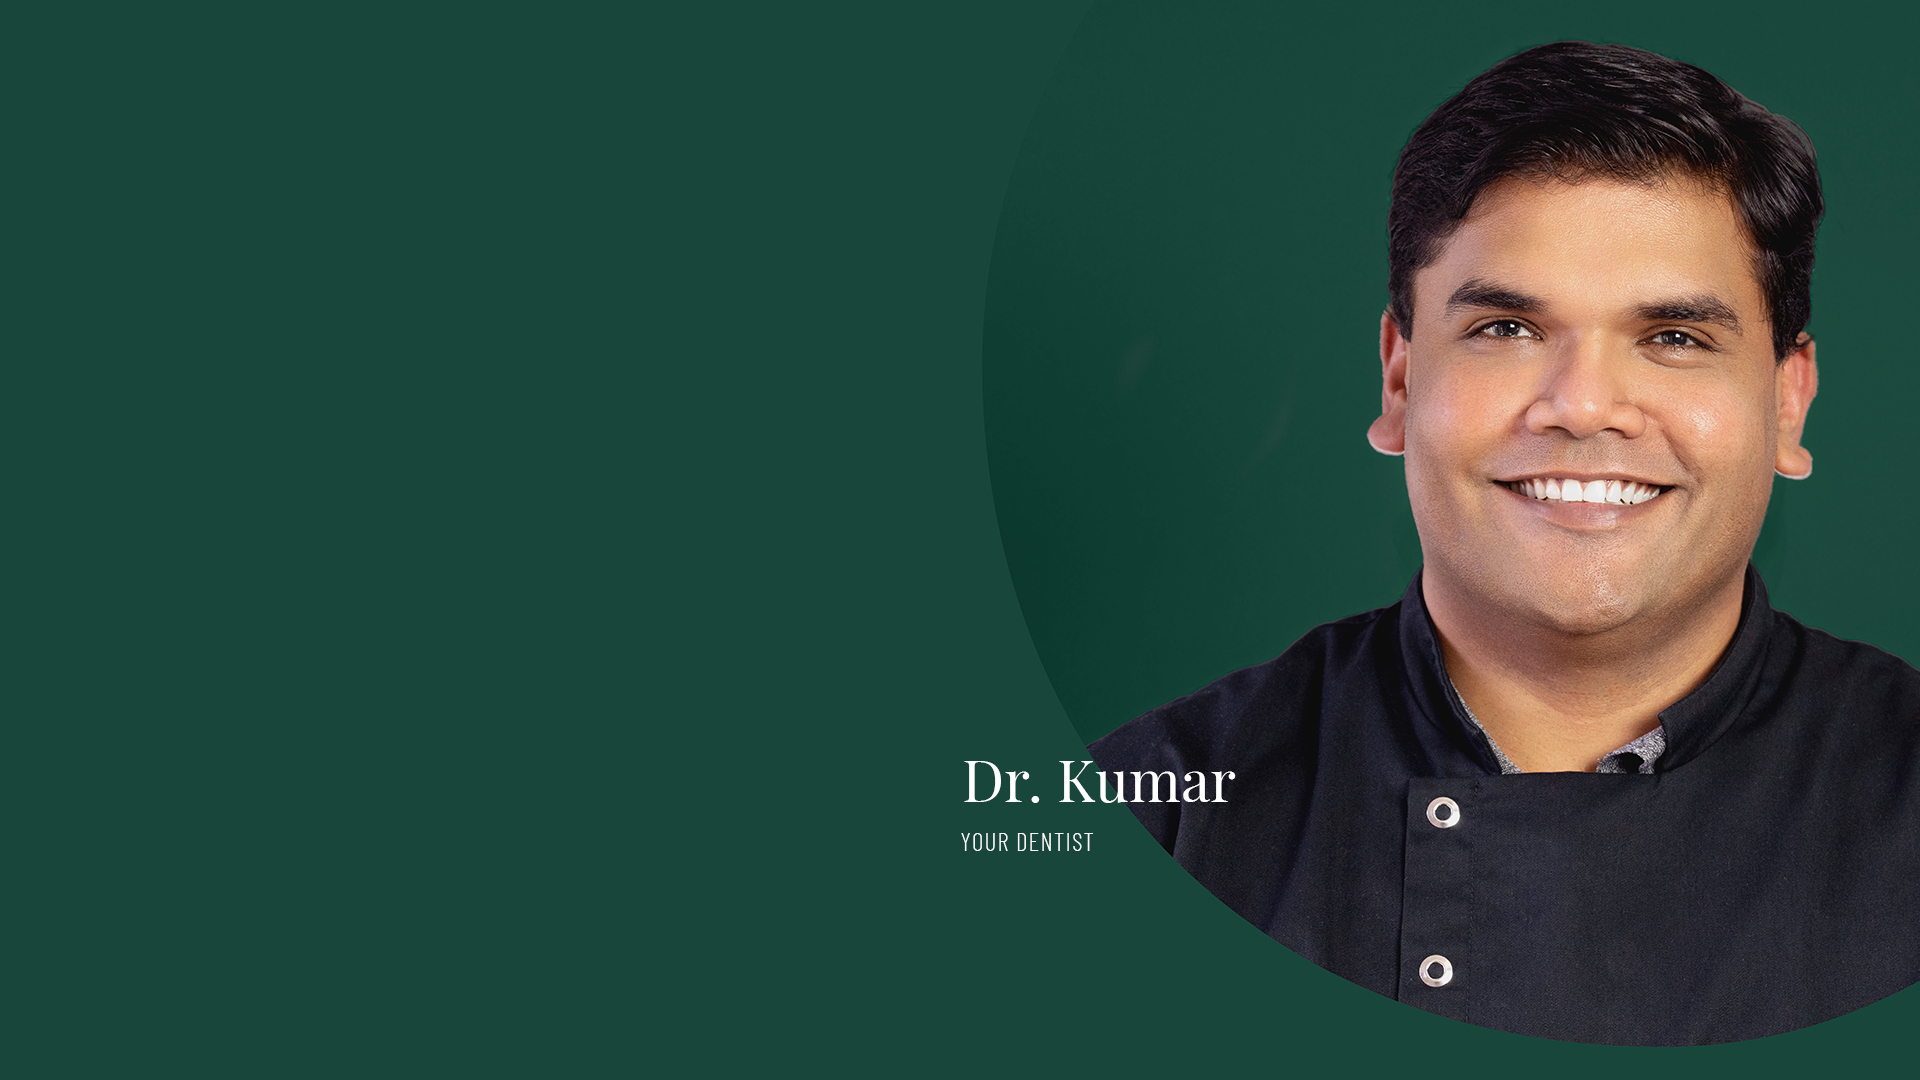 Dr. Kumar a family dentist at Vogue Dental Studios.